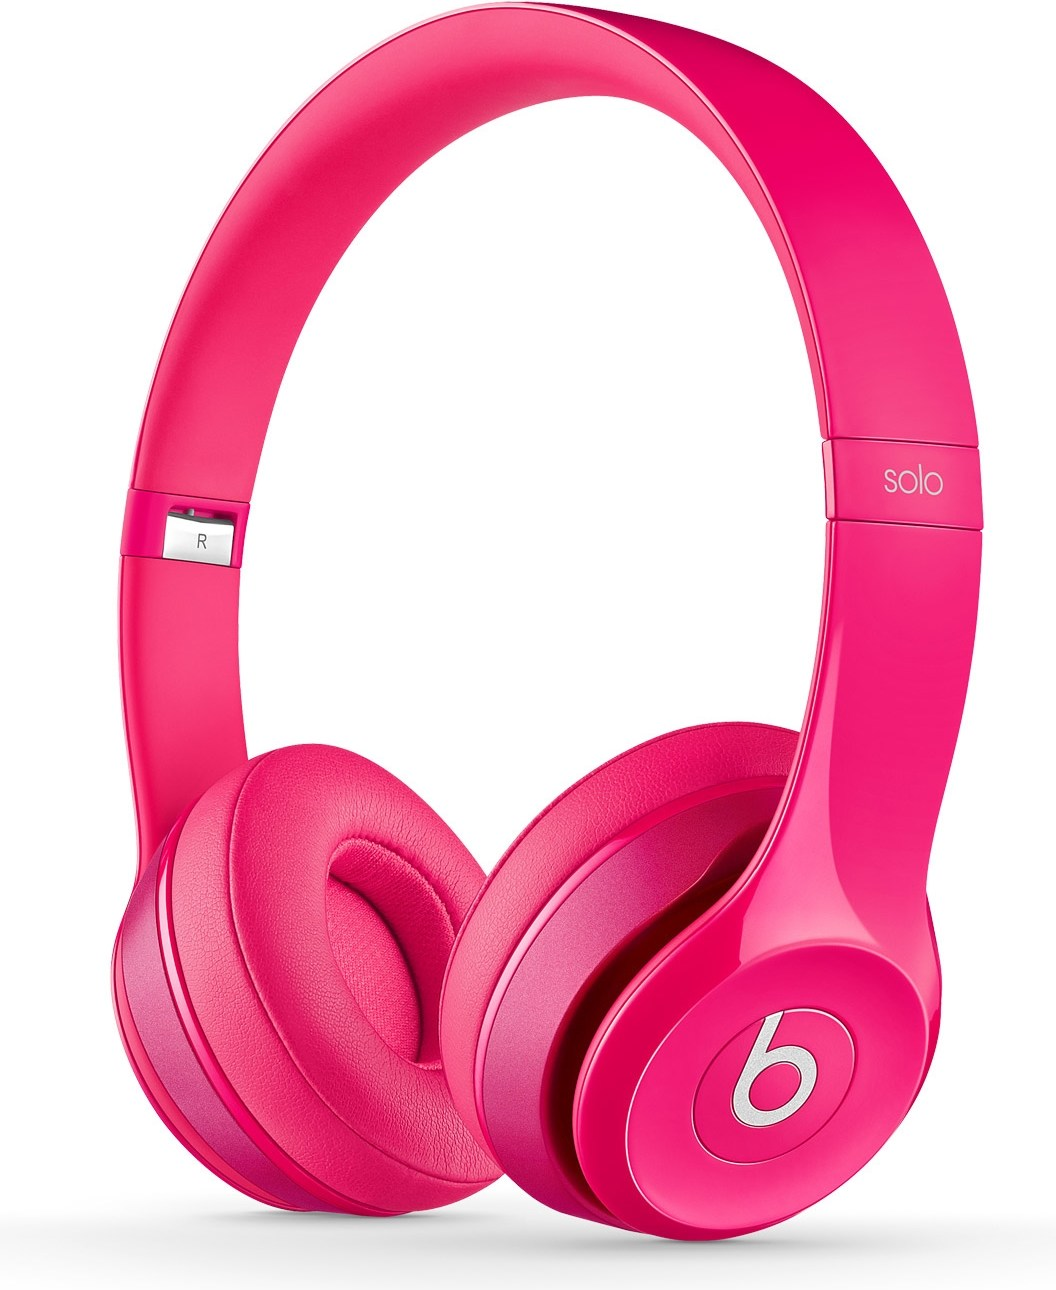 Monster Beats Solo 2 by Dr. Dre